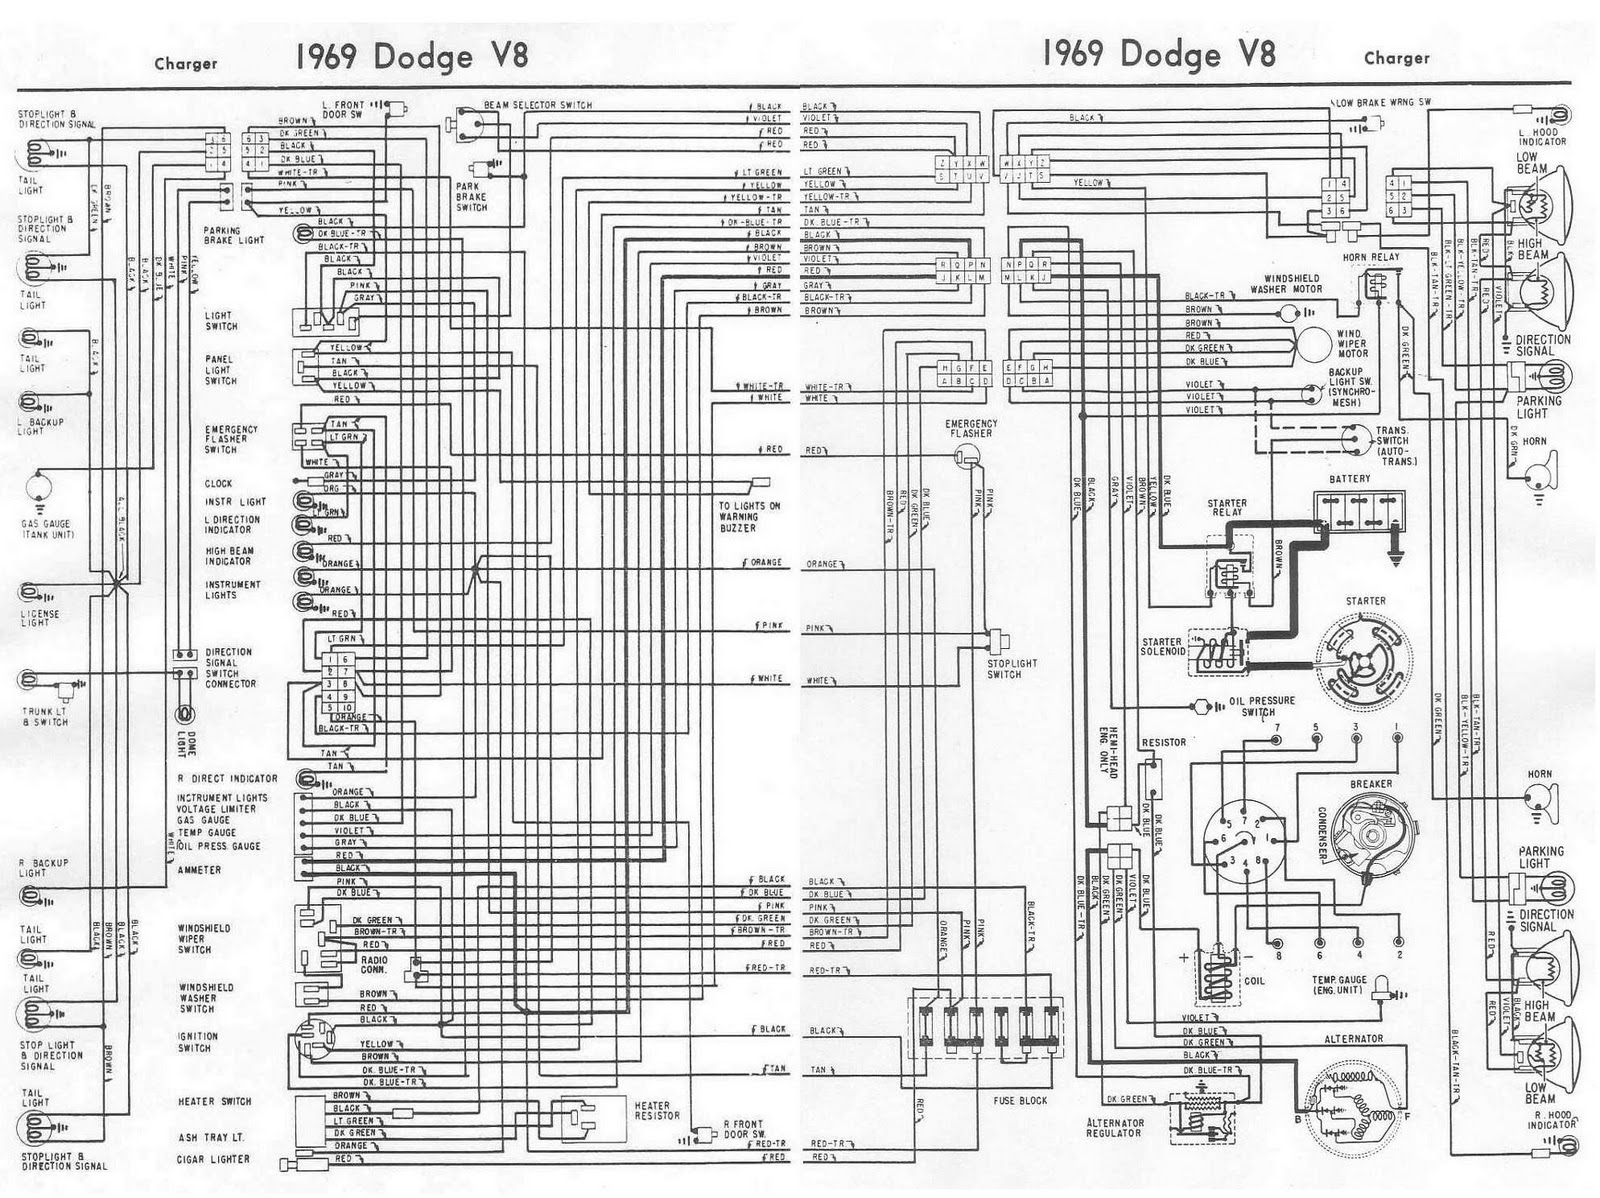 1969+Dodge+Charger+V8+Complete+Wiring+Diagram 2012 mustang wiring diagram 2010 flex wiring diagram \u2022 wiring  at aneh.co